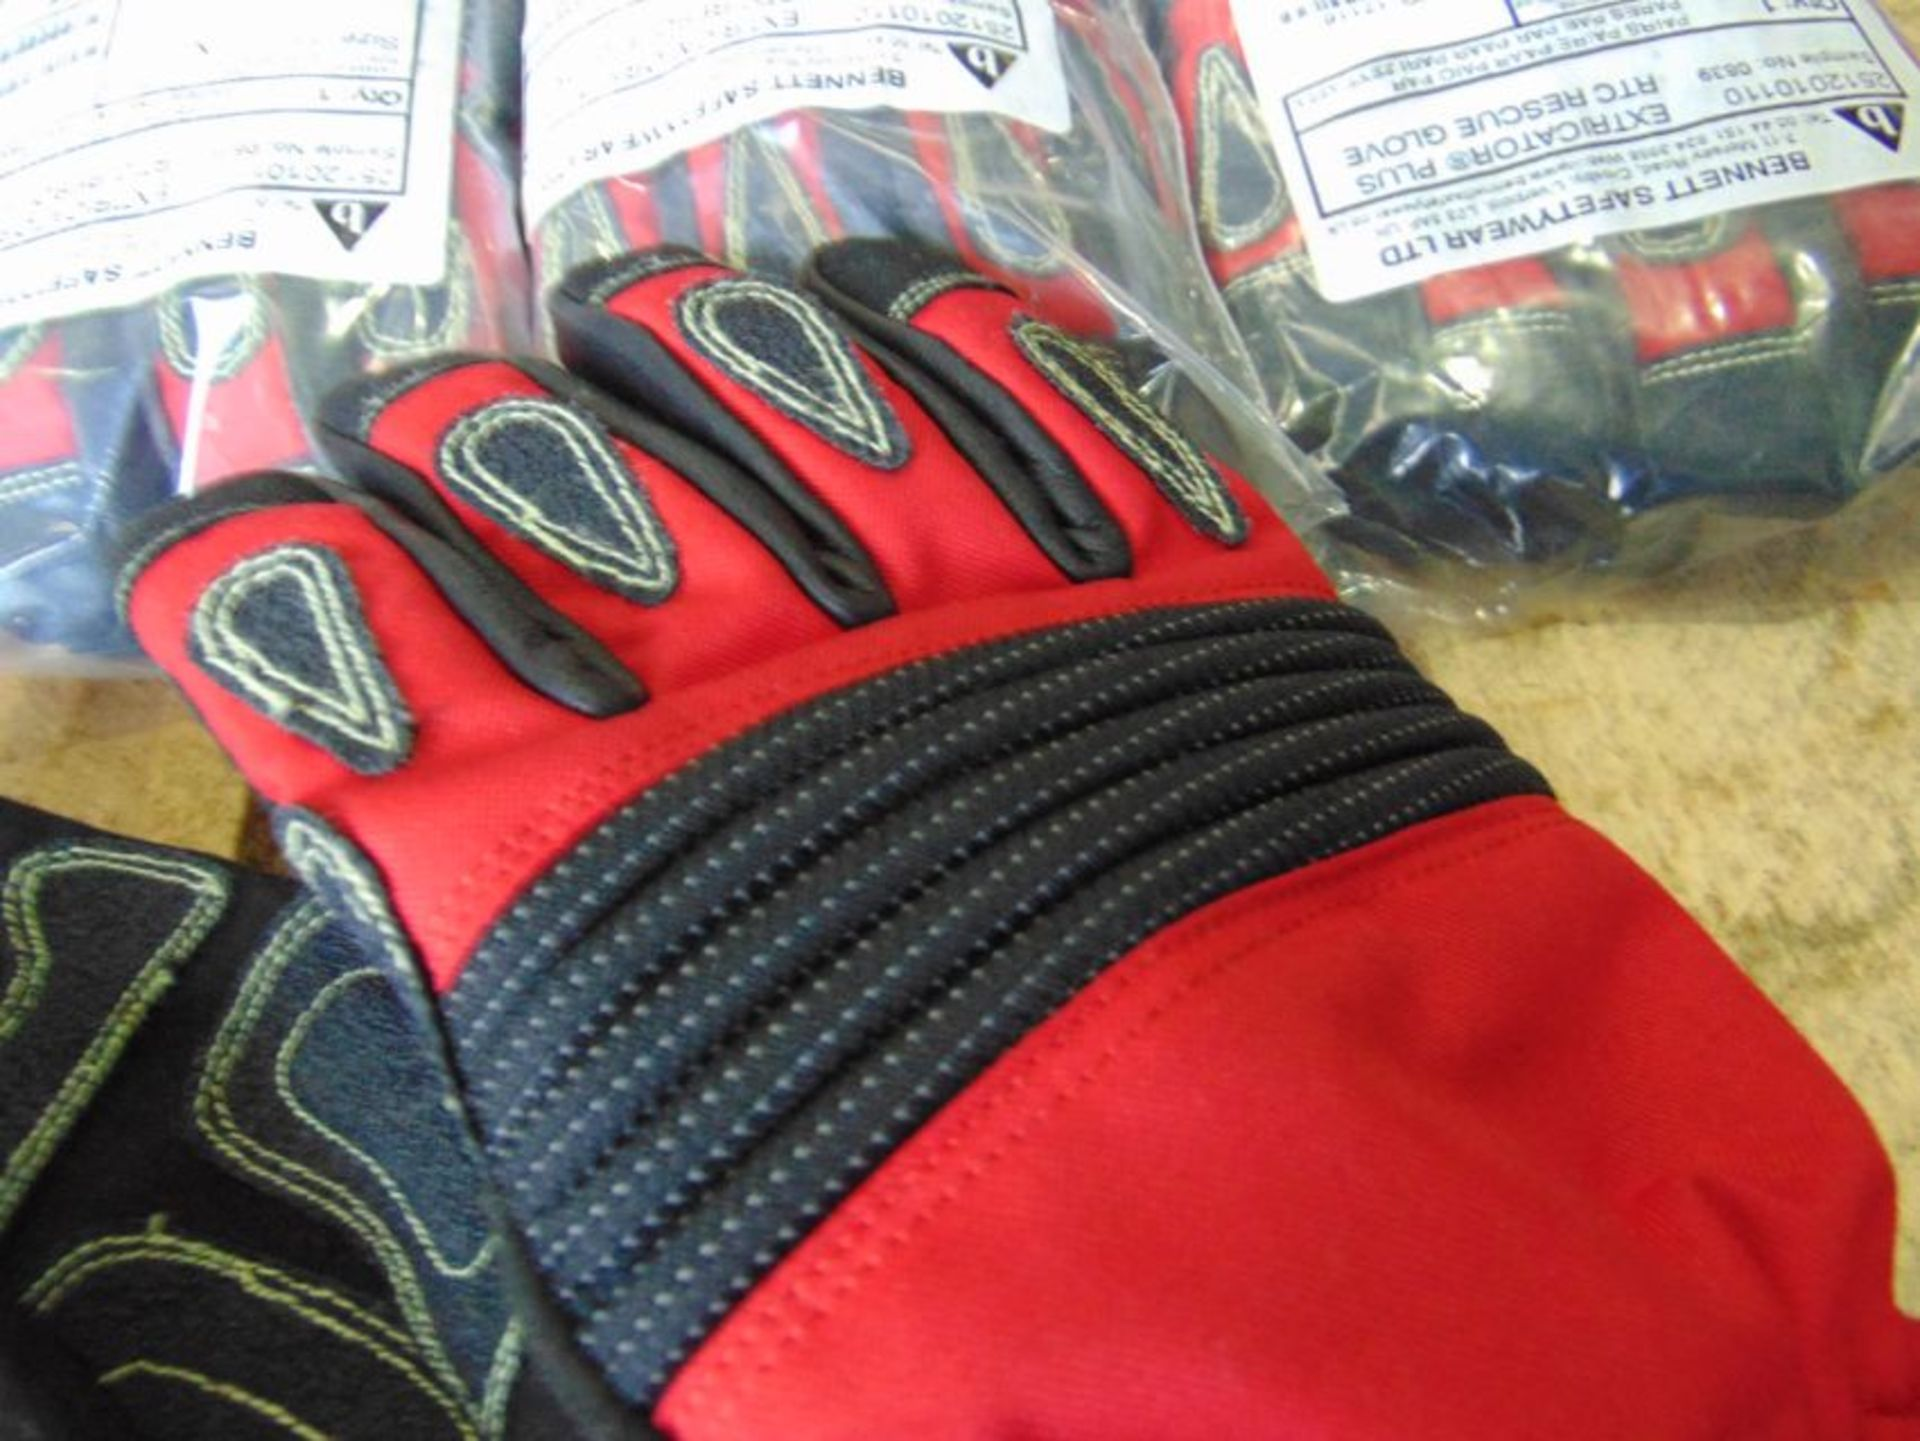 QTY 5 x Unissued M Bennett Extricator Plus RTC Gloves - Image 3 of 5